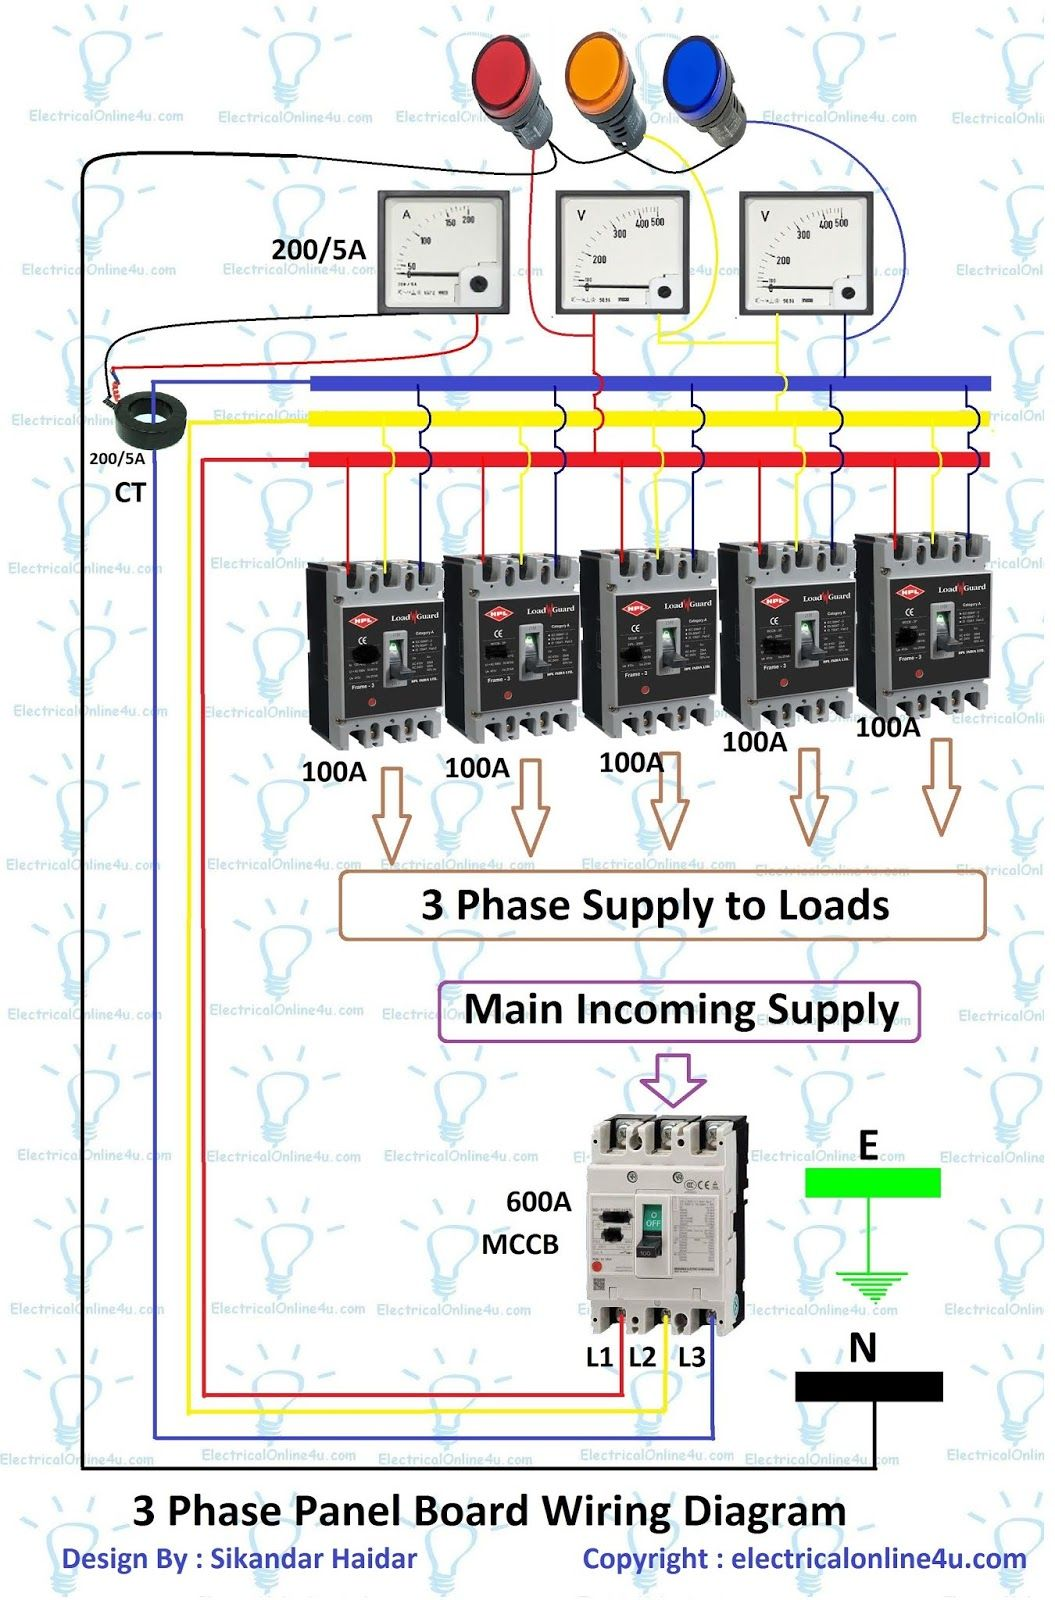 3 Phase Distribution Board Wiring Diagram Electrical Tutorials Distribution Board Electrical Circuit Diagram Electrical Wiring Diagram